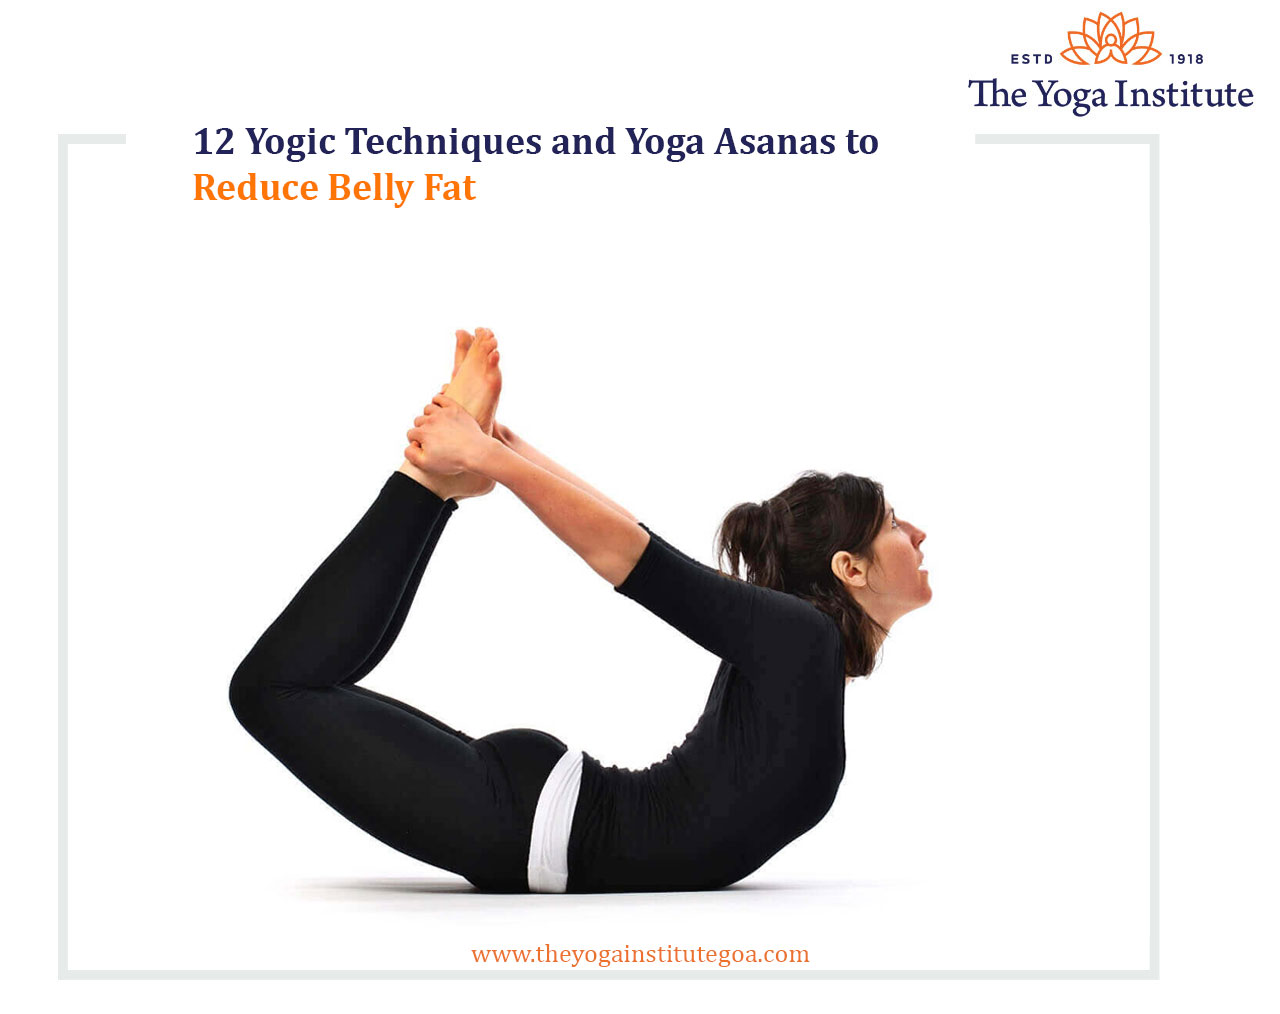 Yoga Asanas to Reduce Belly Fat